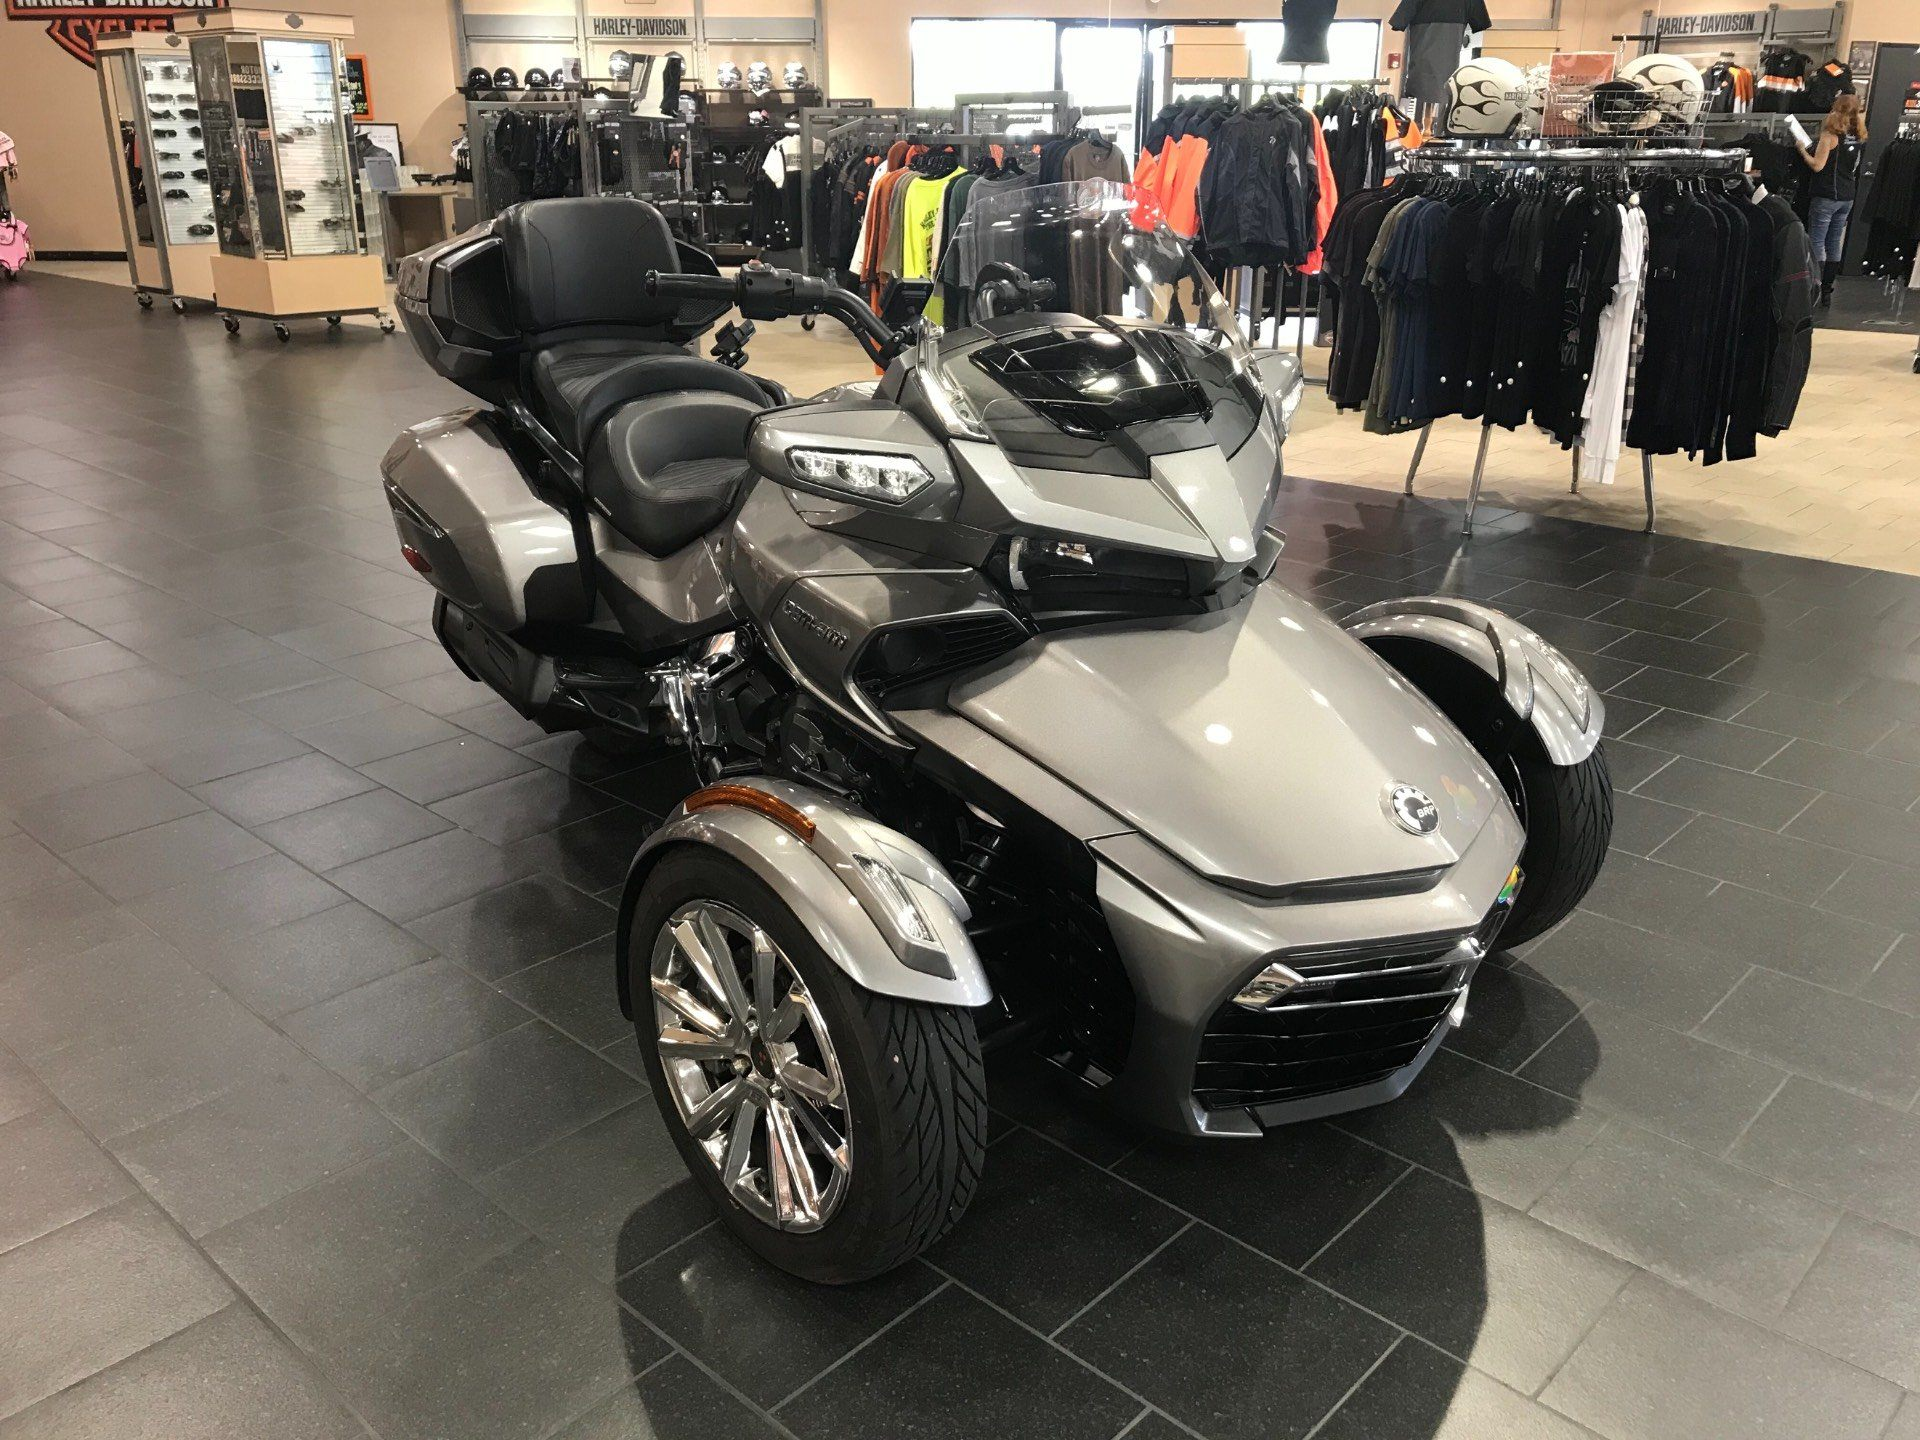 2017 Can-Am Spyder F3 Limited in The Woodlands, Texas - Photo 2